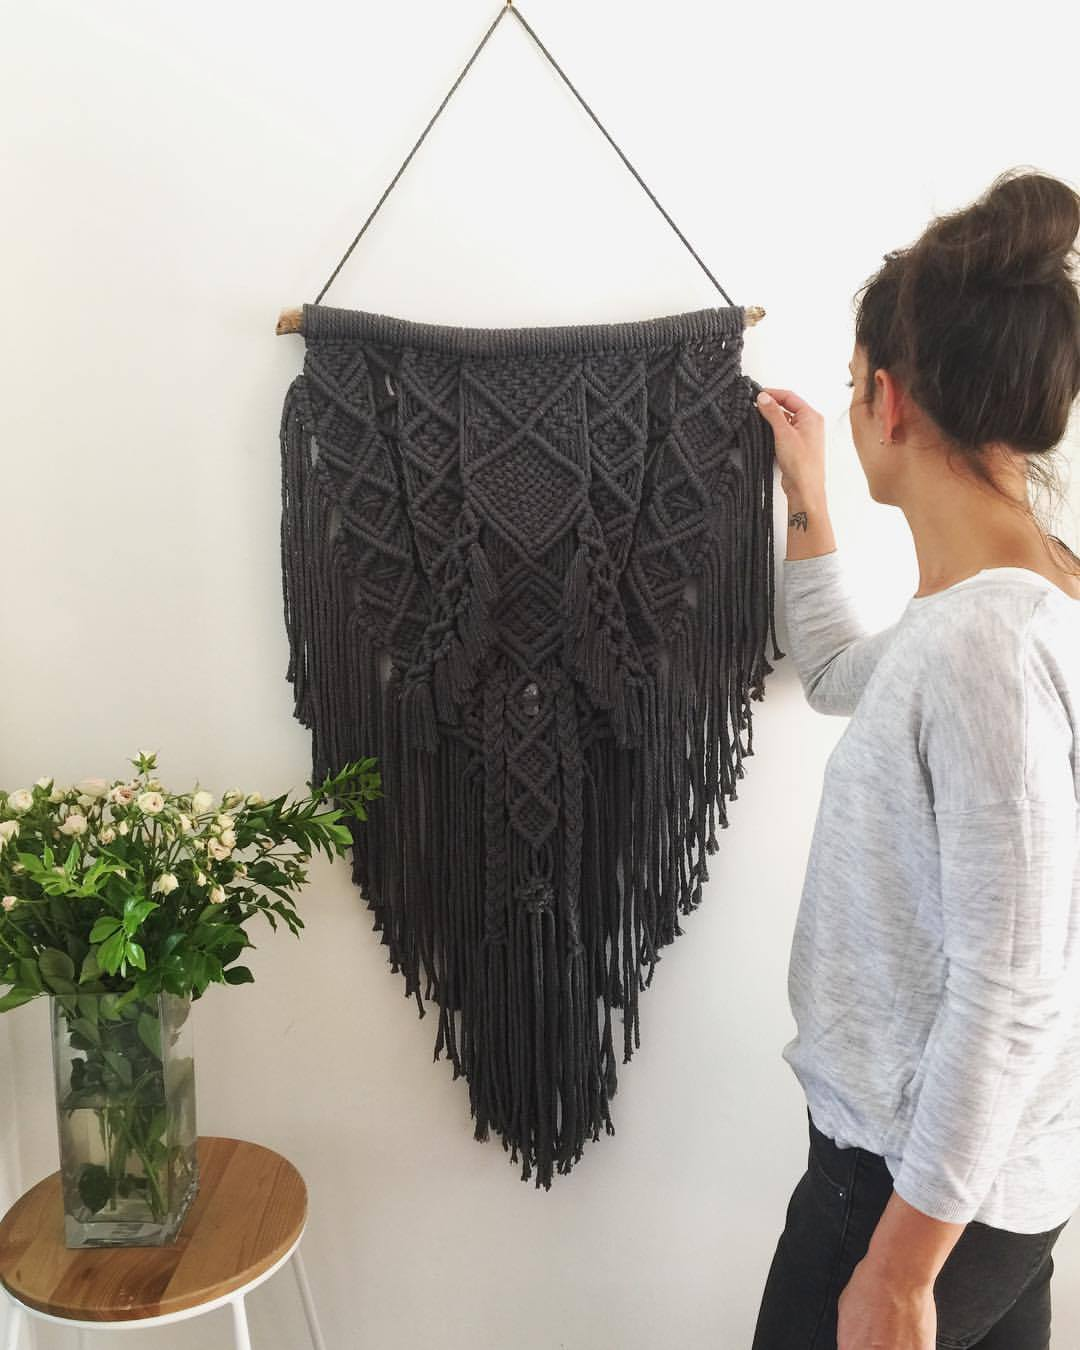 Boho Shield - Custom made Macramé Wall Hanger